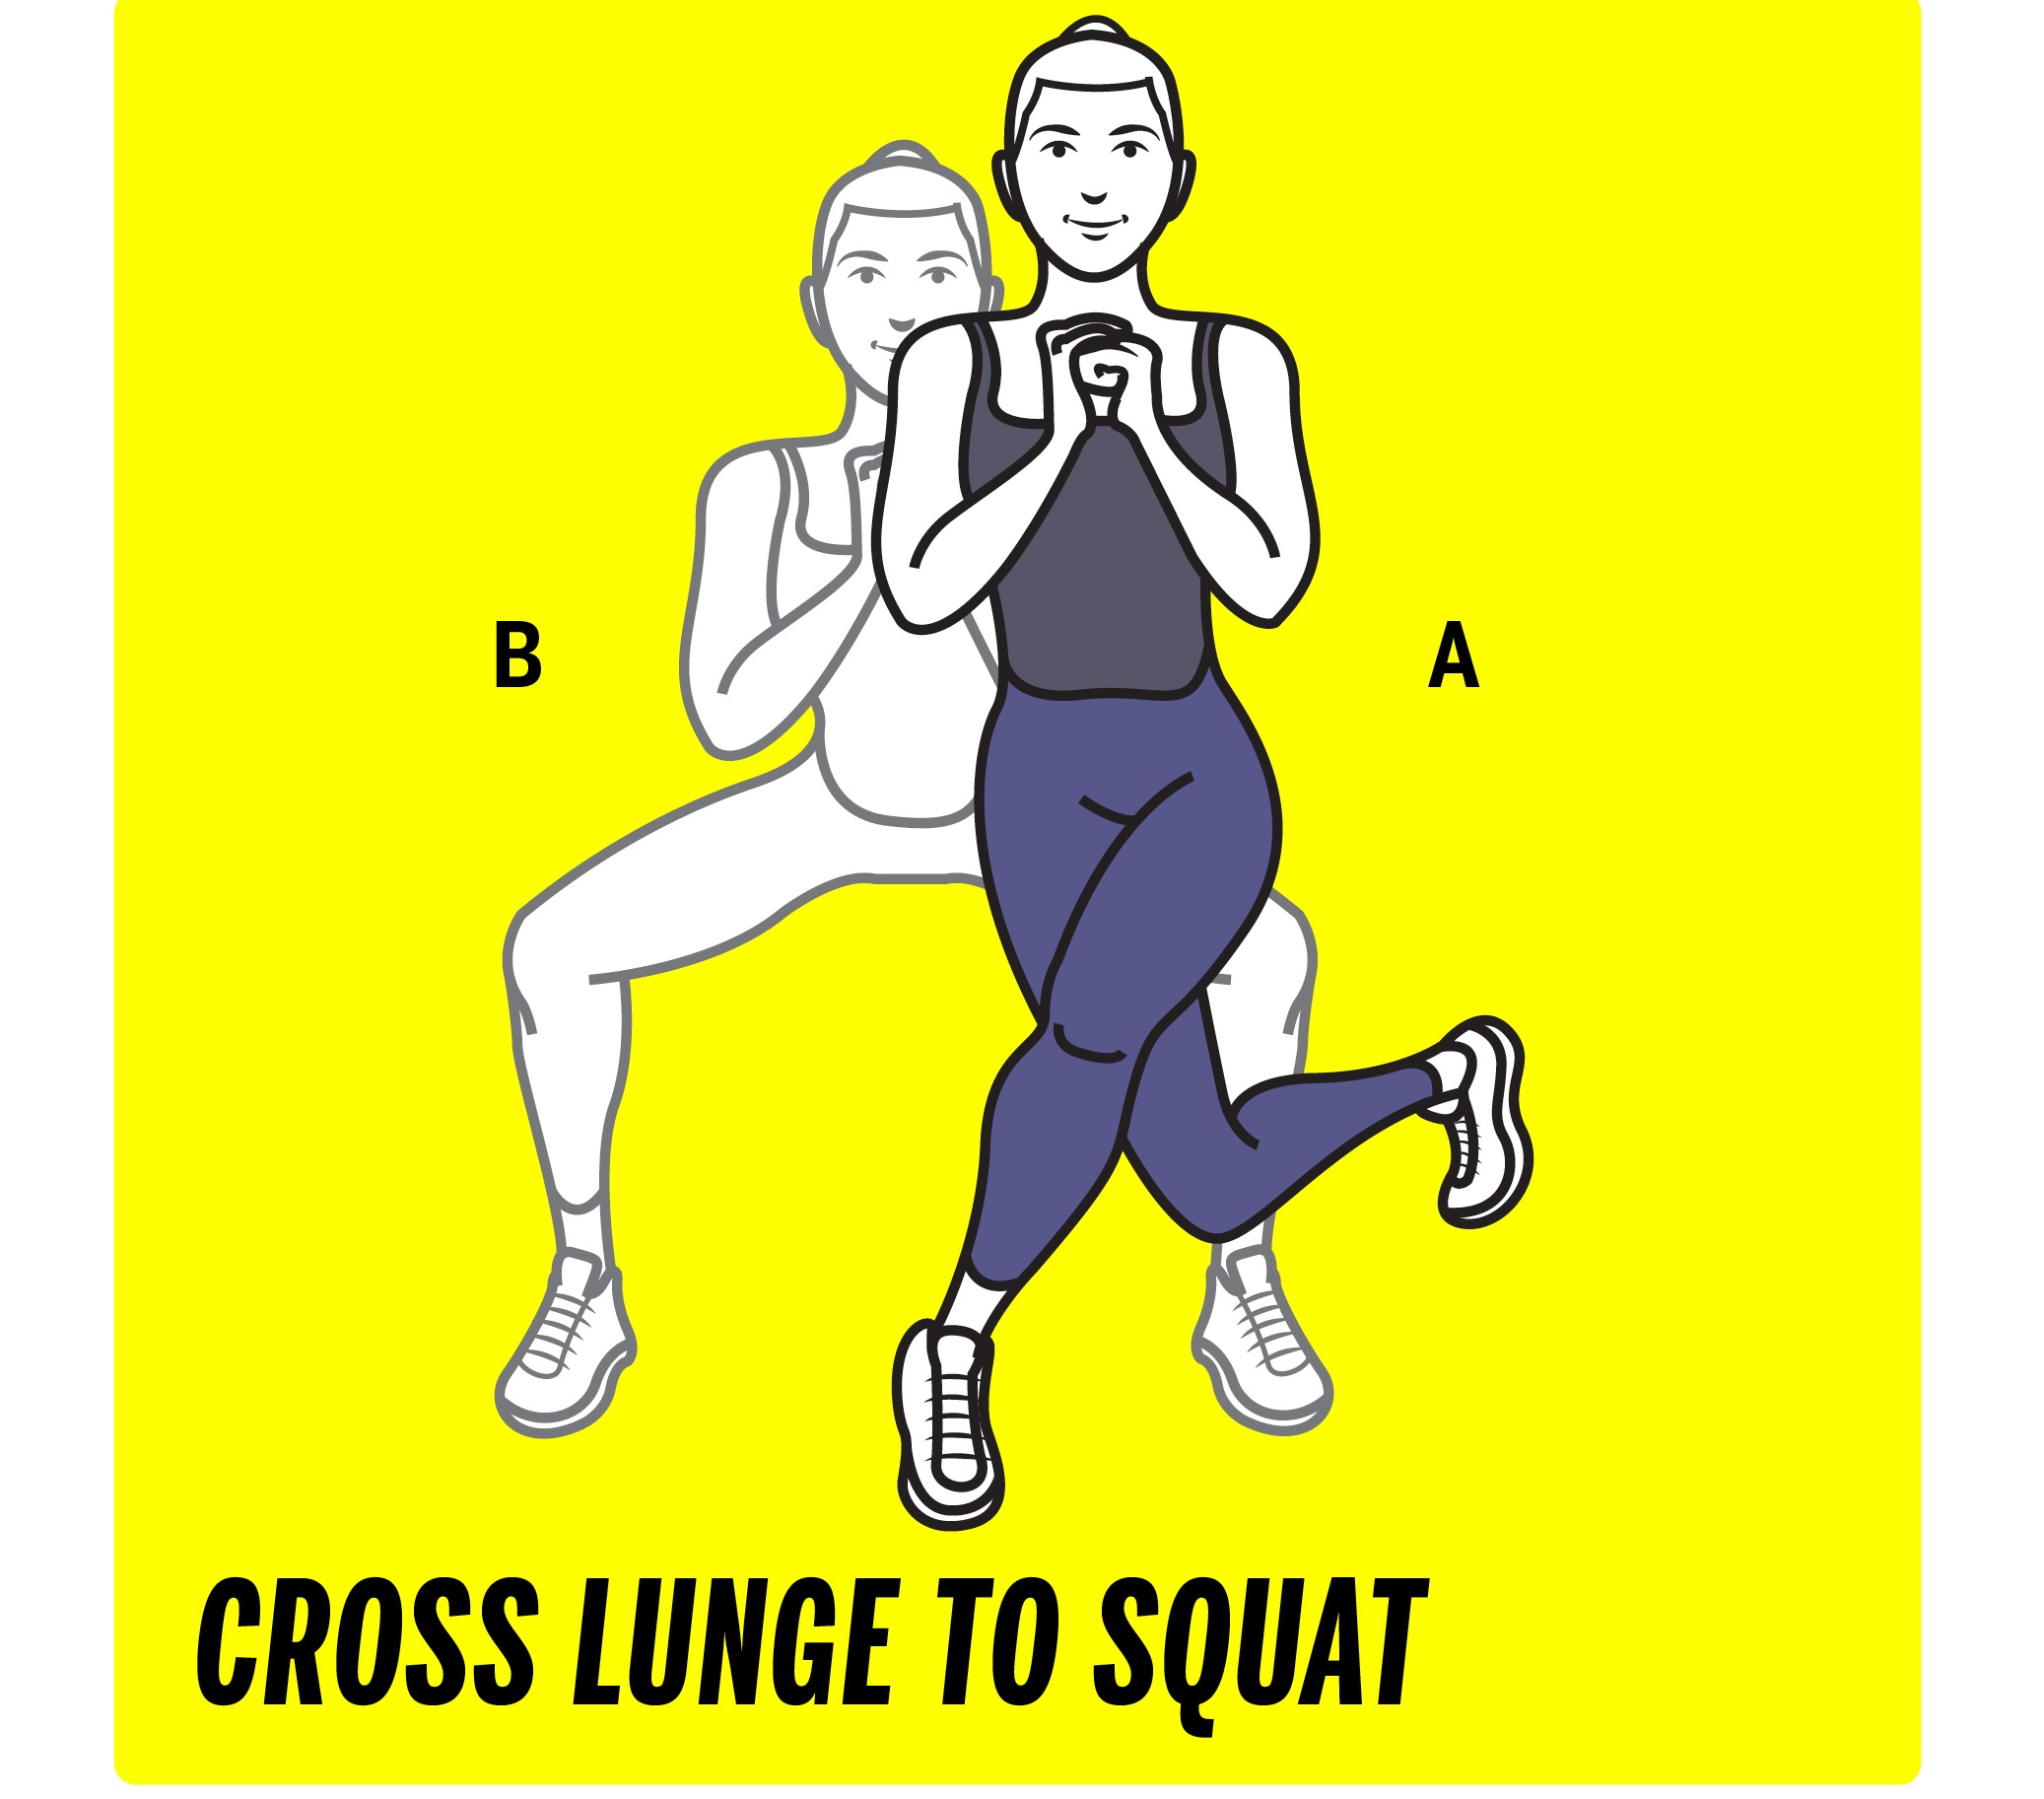 Cross lunge to squat